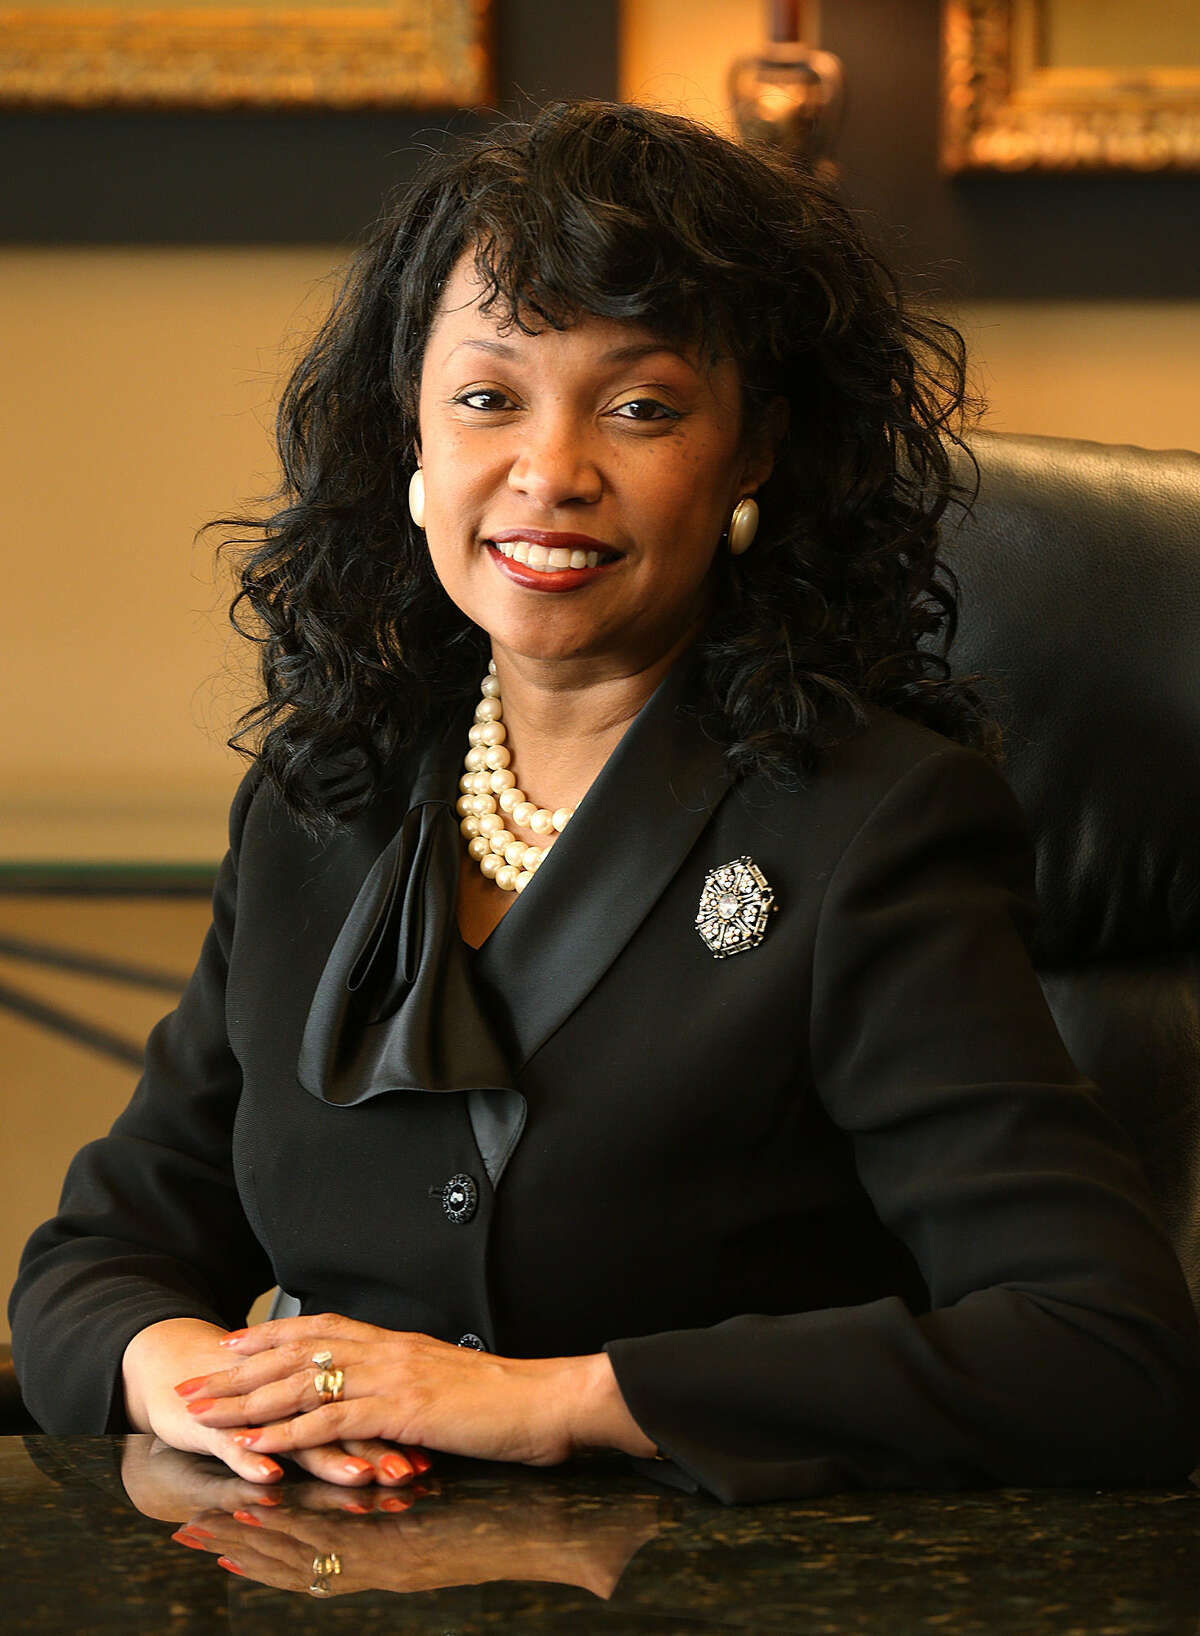 T.J. Haygood founded Confidential Search Solutions, a recruiting and staffing firm, in 2009.